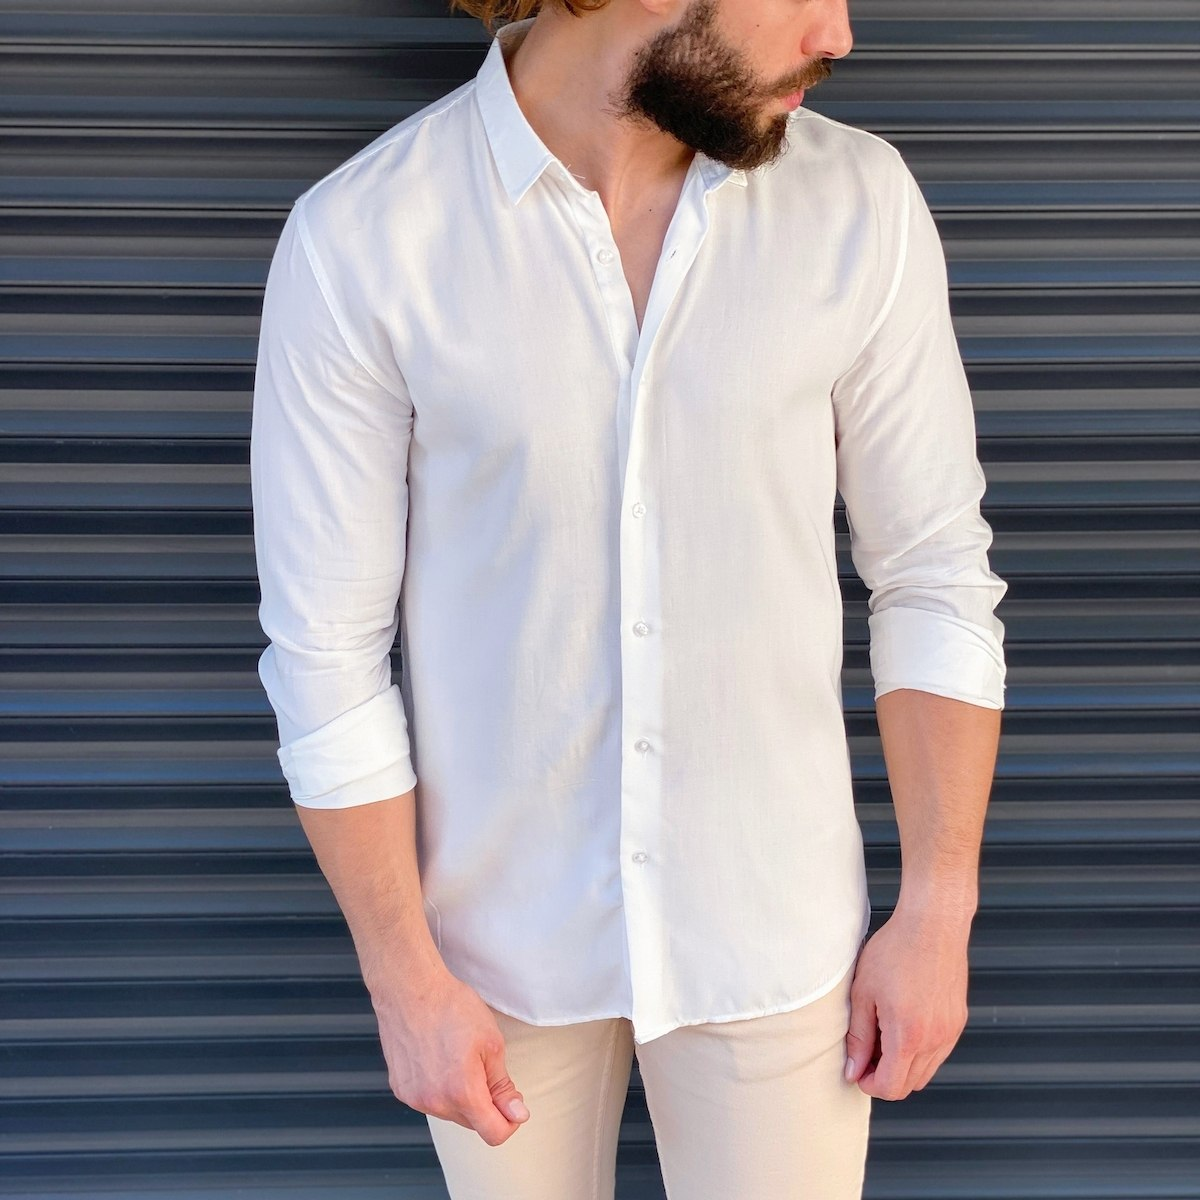 Men's Essential Shirt In White